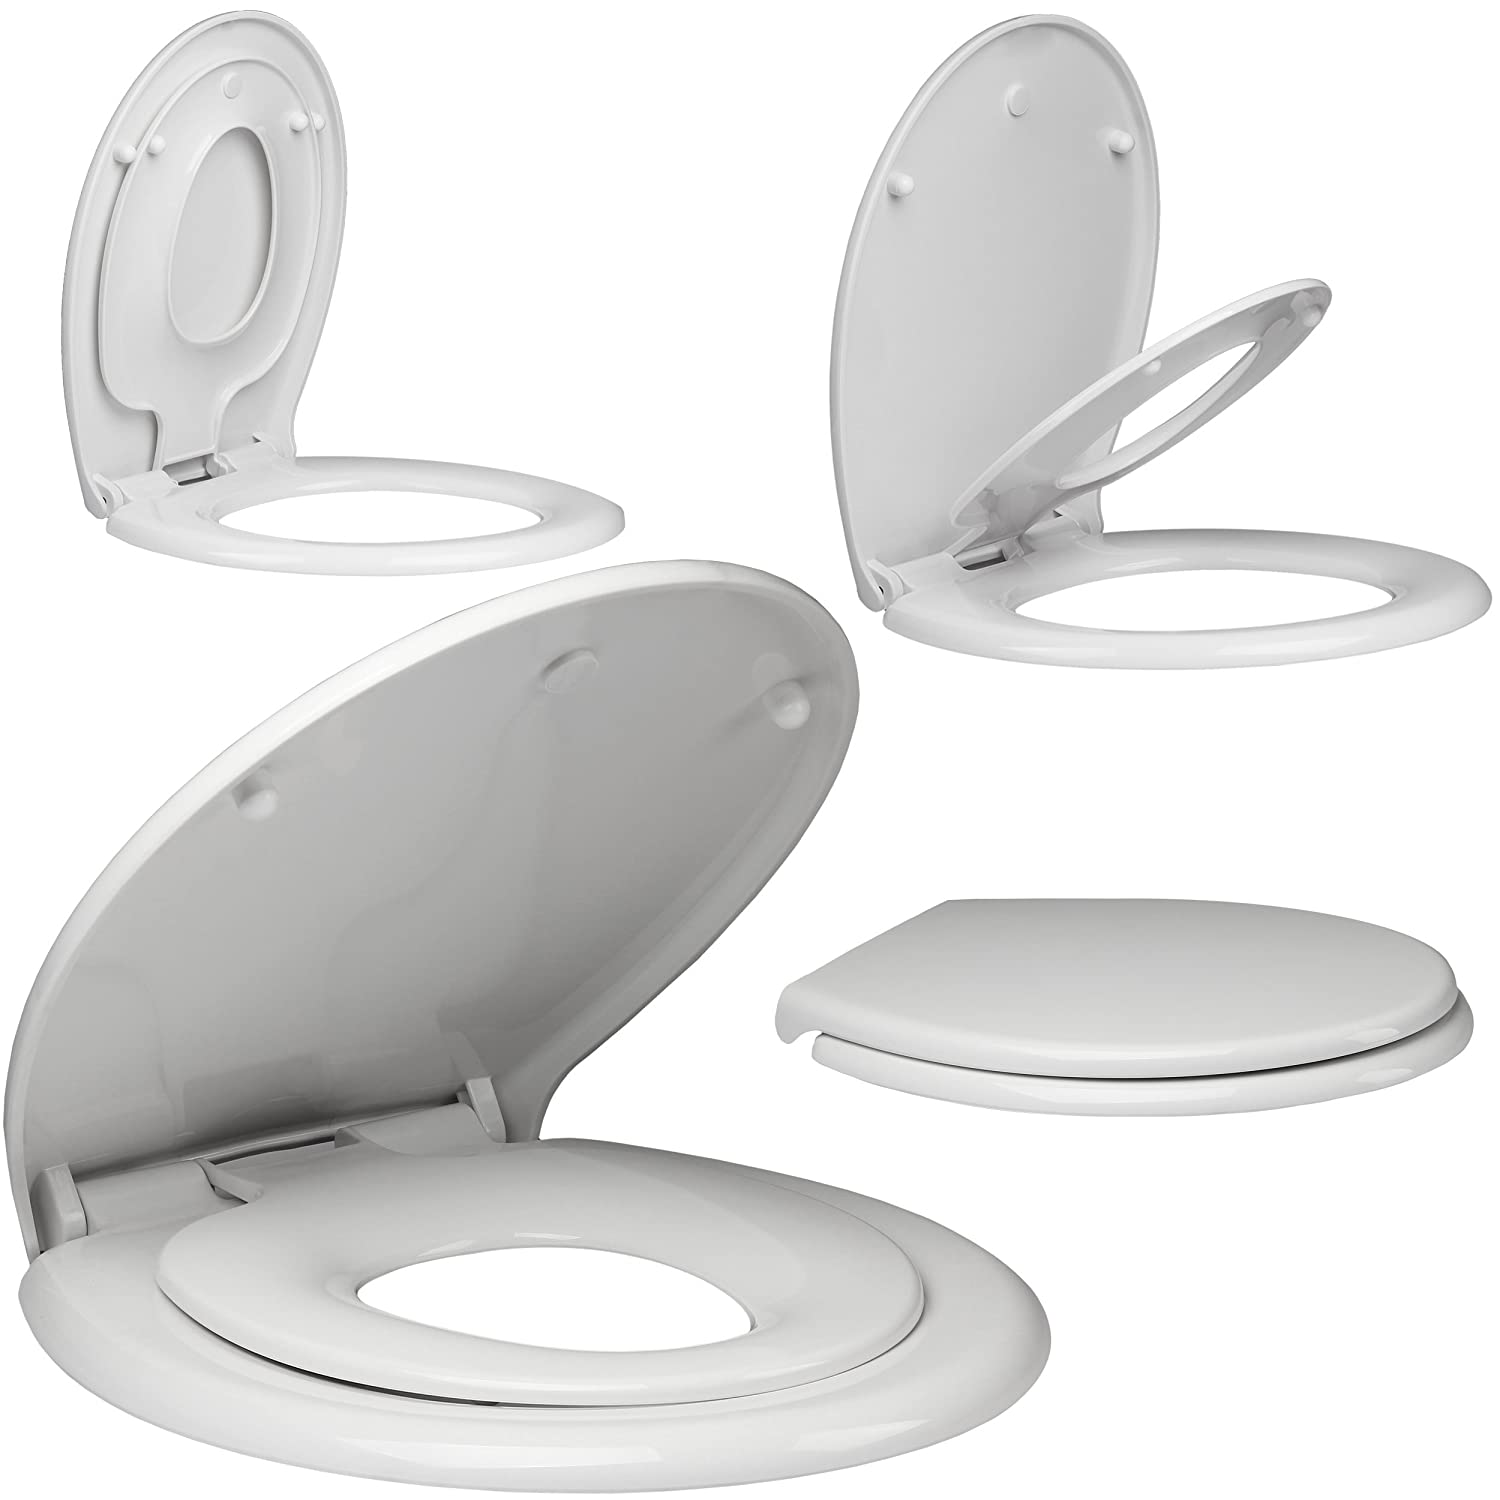 EcoSpa Parent & Child Toilet Seat with smooth Top Fitting Hinges that is Super Easy to Install and keep Clean. Anti-Slam Lid & Seat Feature that stays in place. Very sturdy with no warping or bowing.